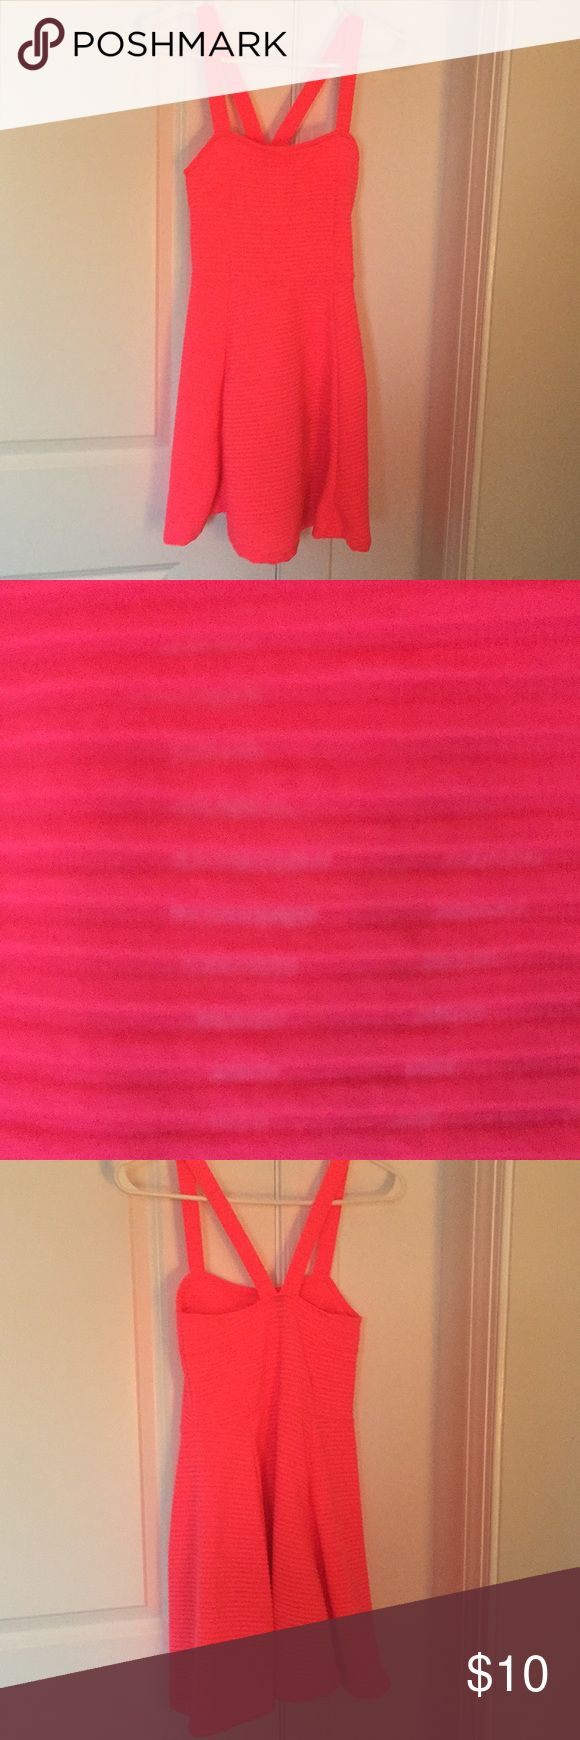 Neon pink dress Size XS Neon pink dress Size XS. Very comfortable and fun Divided Dresses Mini